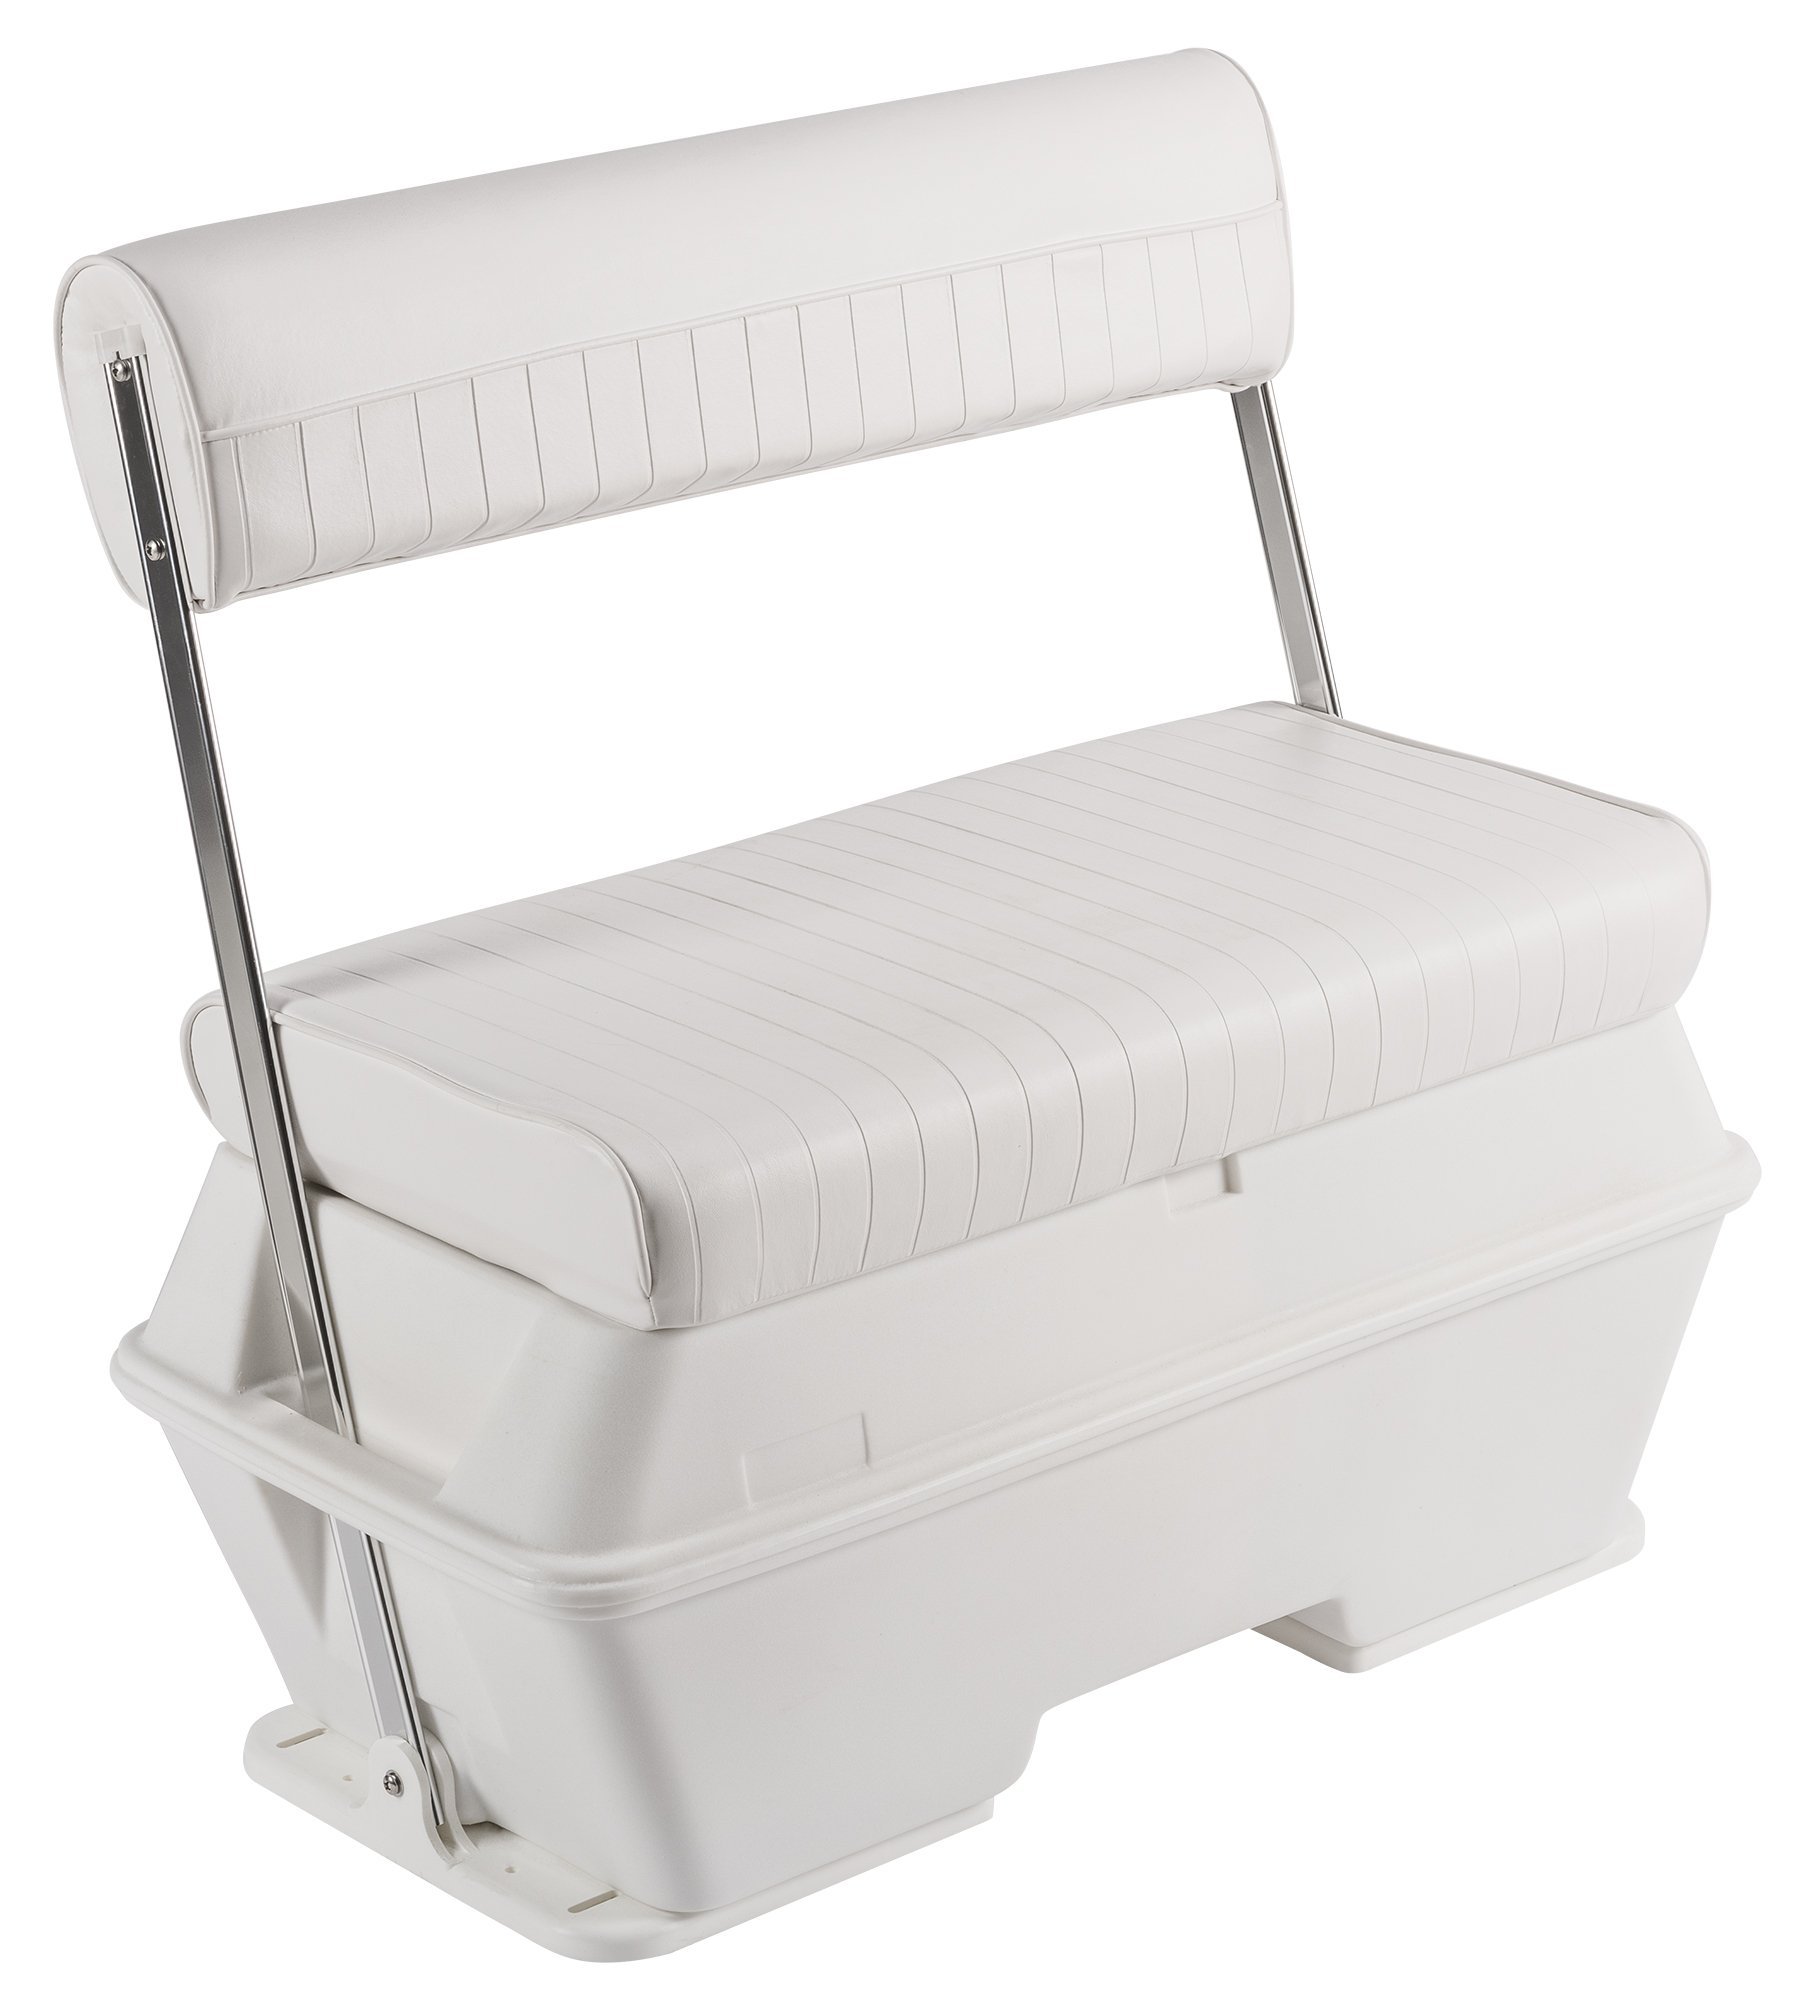 Wise 8WD156-784 Swingback Cooler Seat, 70-Quart, Cuddy Brite White by Wise